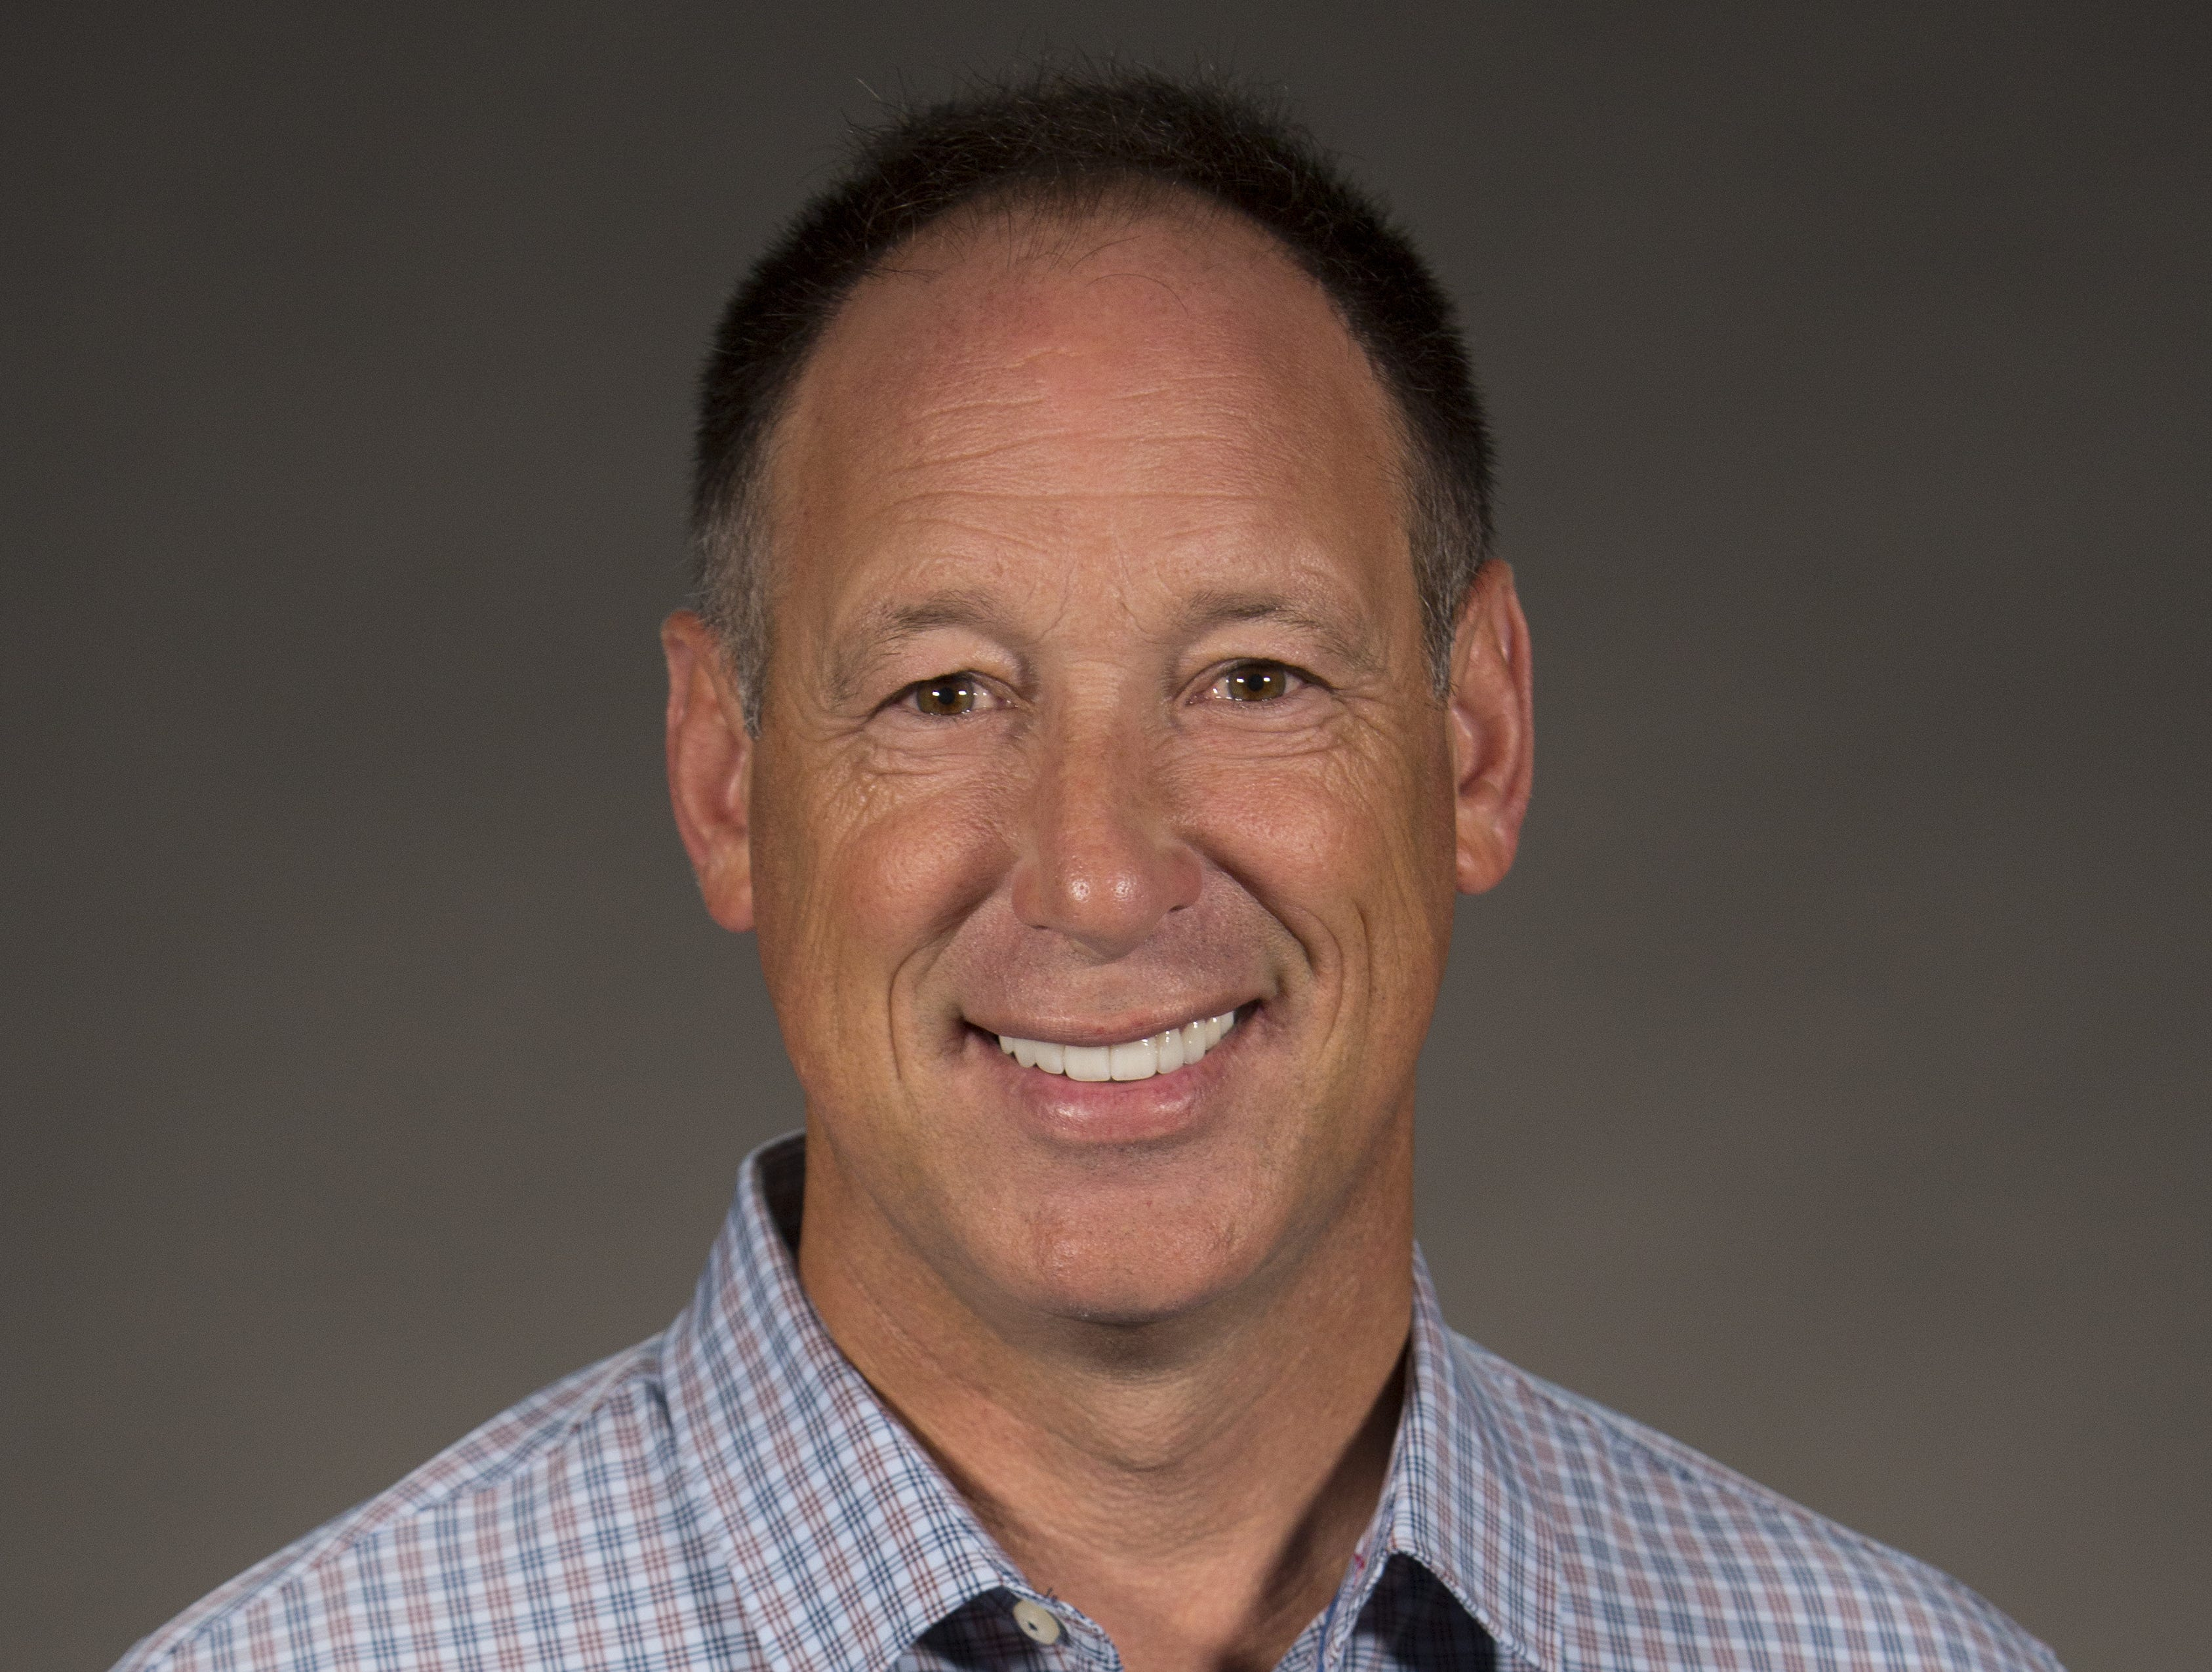 Luis Gonzalez (Phoenix): Retired Major League Baseball outfielder. Played for the Arizona Diamondbacks 1999-2006. Hit the series-winning single in the 2001 World Series.